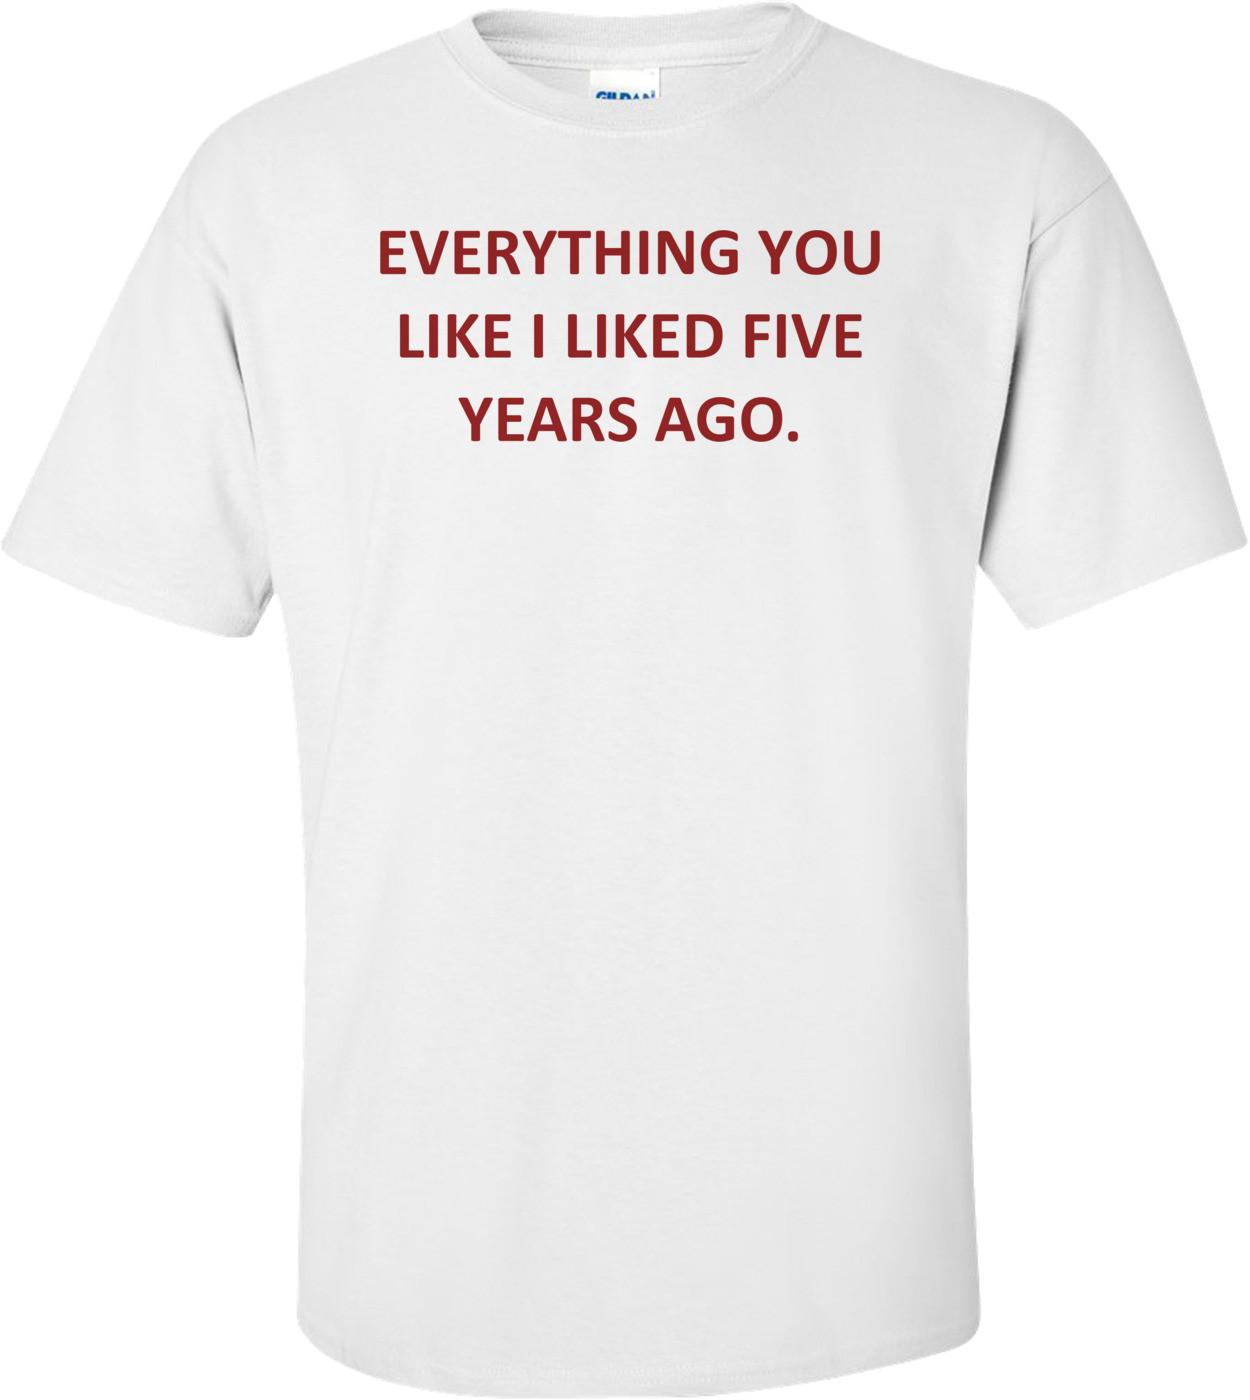 EVERYTHING YOU LIKE I LIKED FIVE YEARS AGO. Shirt